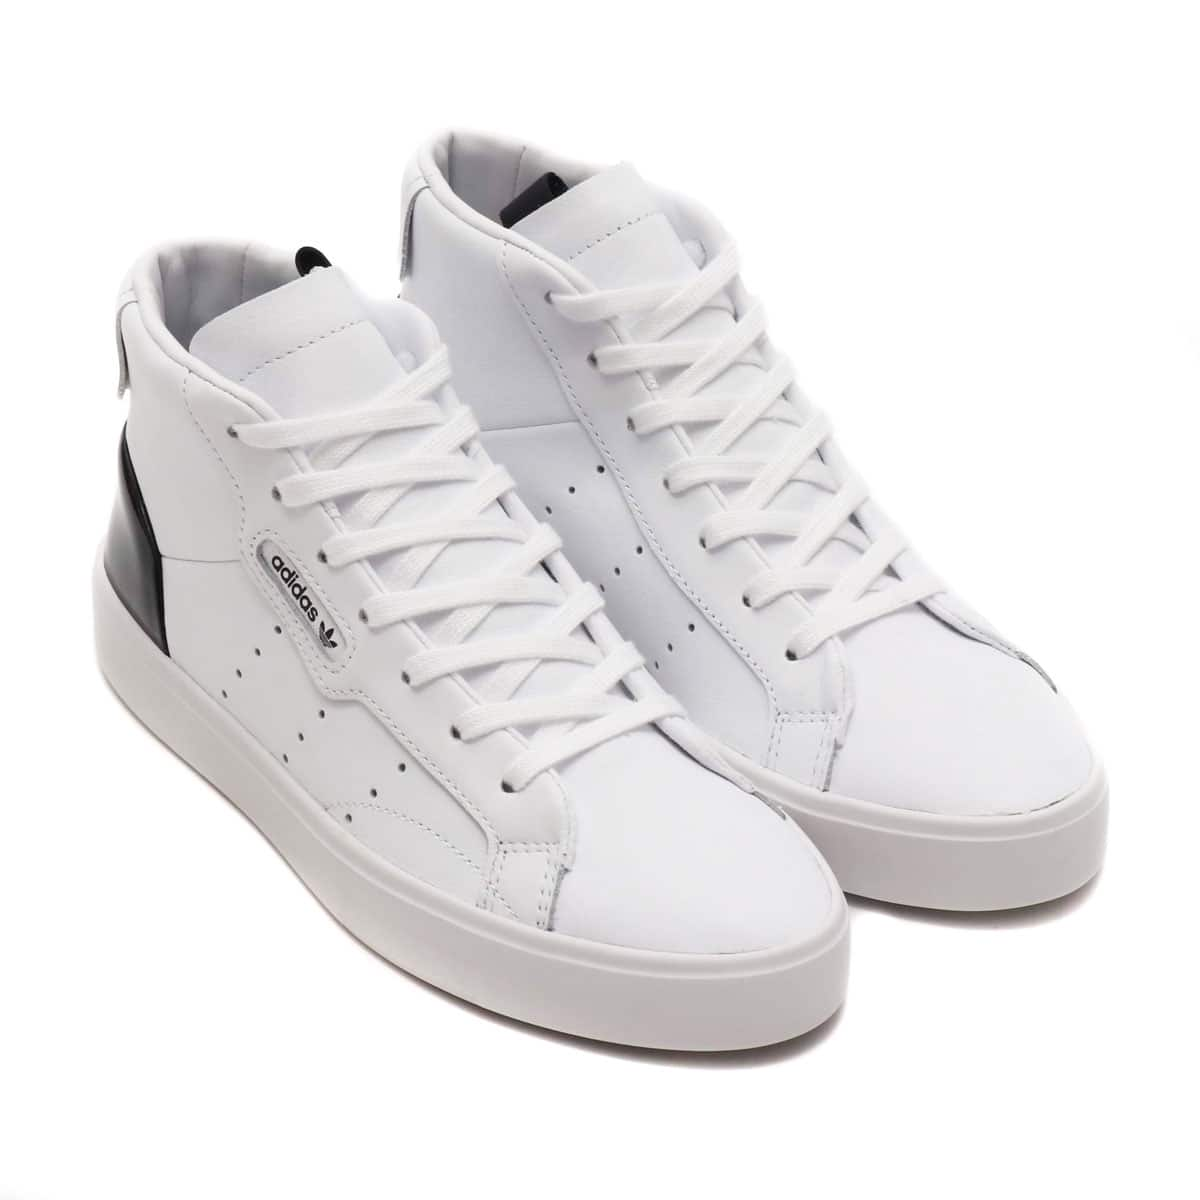 adidas Originals SLEEK MID W RUNNING WHITE/RUNNING WHITE/CORE BLACK 19FW-S_photo_large